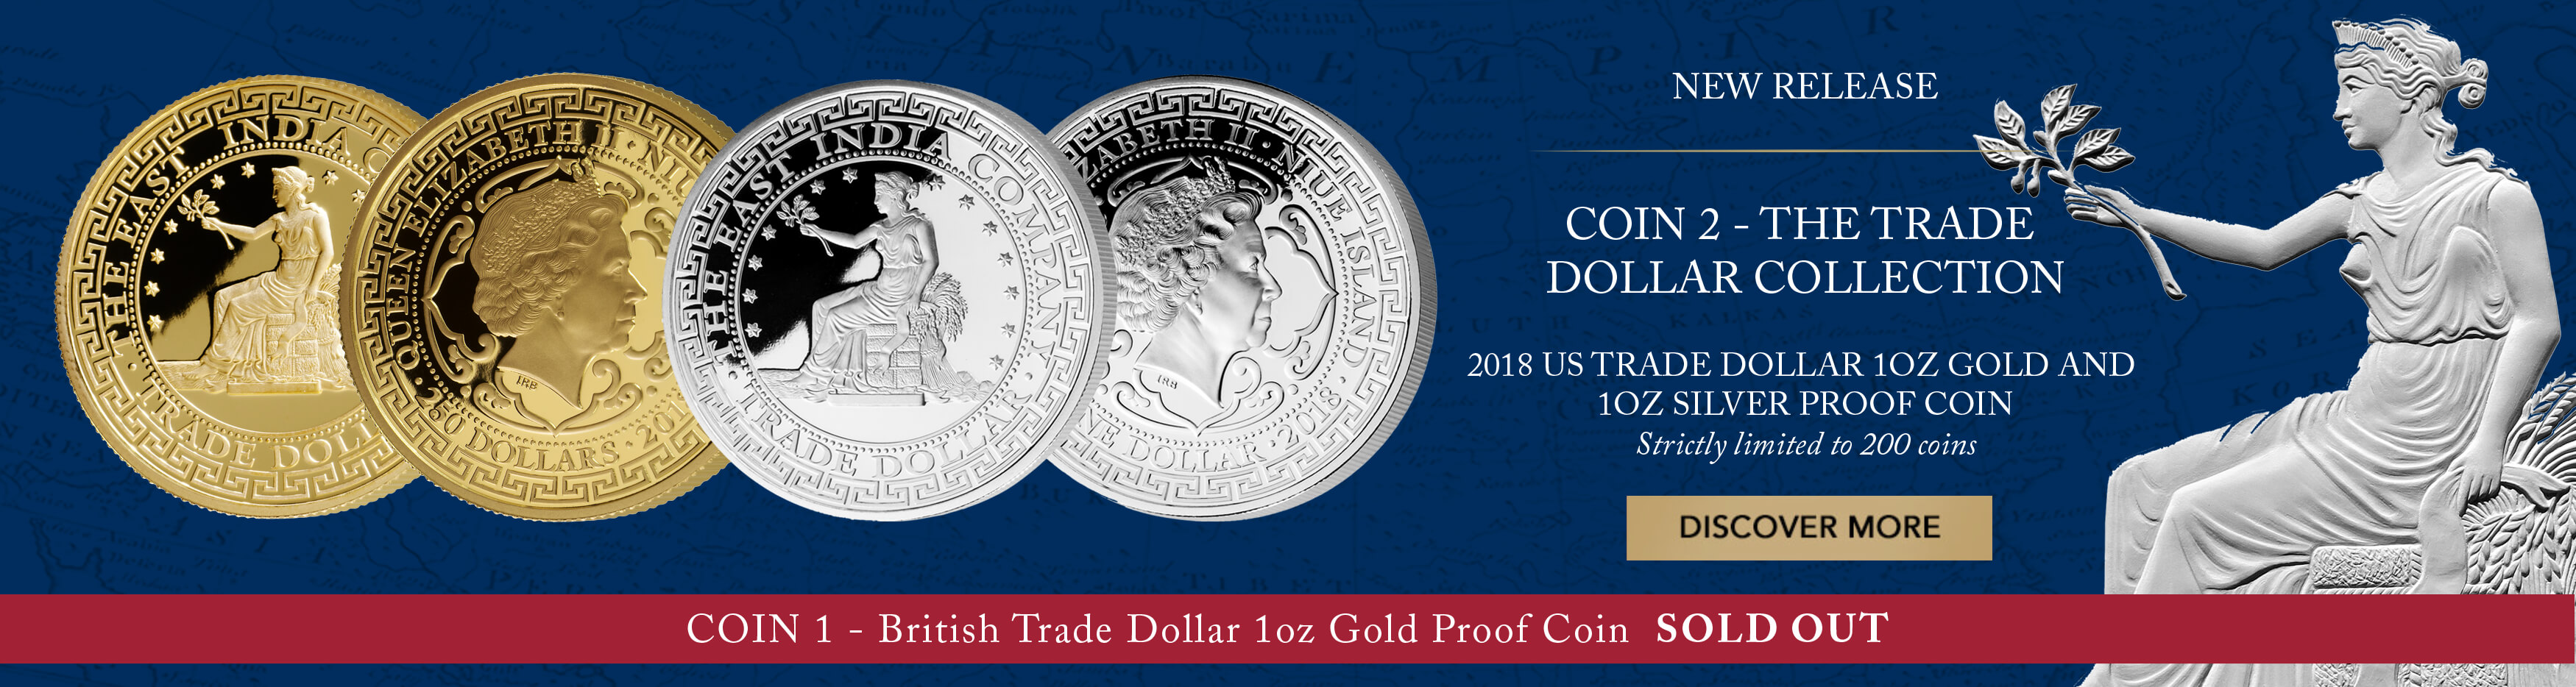 2018 US TRADE DOLLAR 1OZ SILVER PROOF COIN